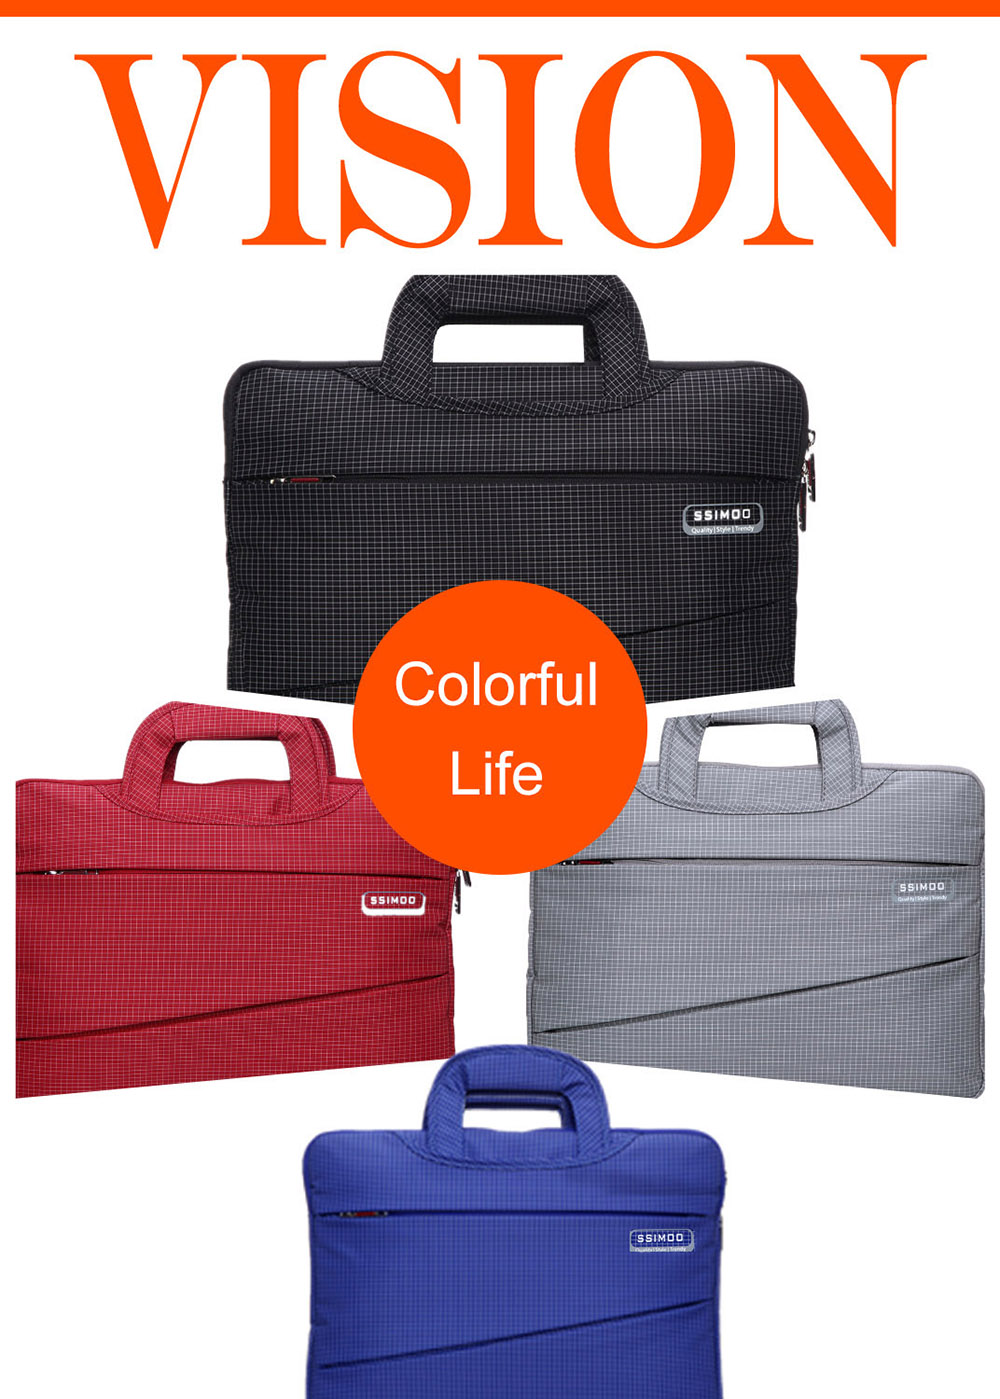 SSIMOO 2 in 1 Business Style Laptop Bag for MacBook 15 inch